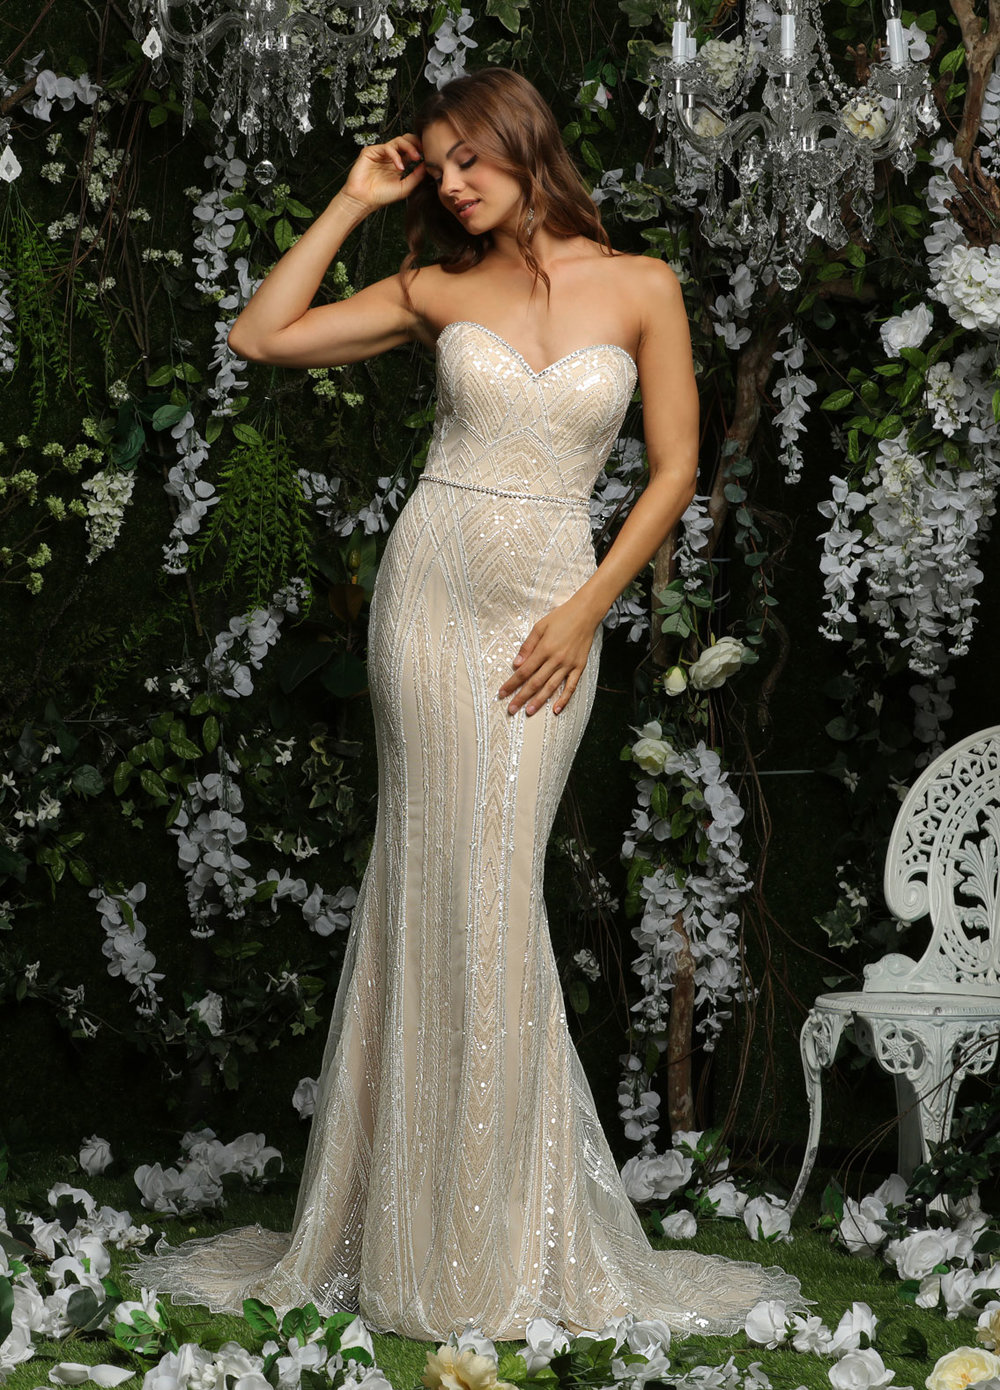 10477 -  Fully beaded Sheath style wedding gown with a beaded belt.      Colors Available - White, Ivory, Ivory/Nude, Ivory/Blue